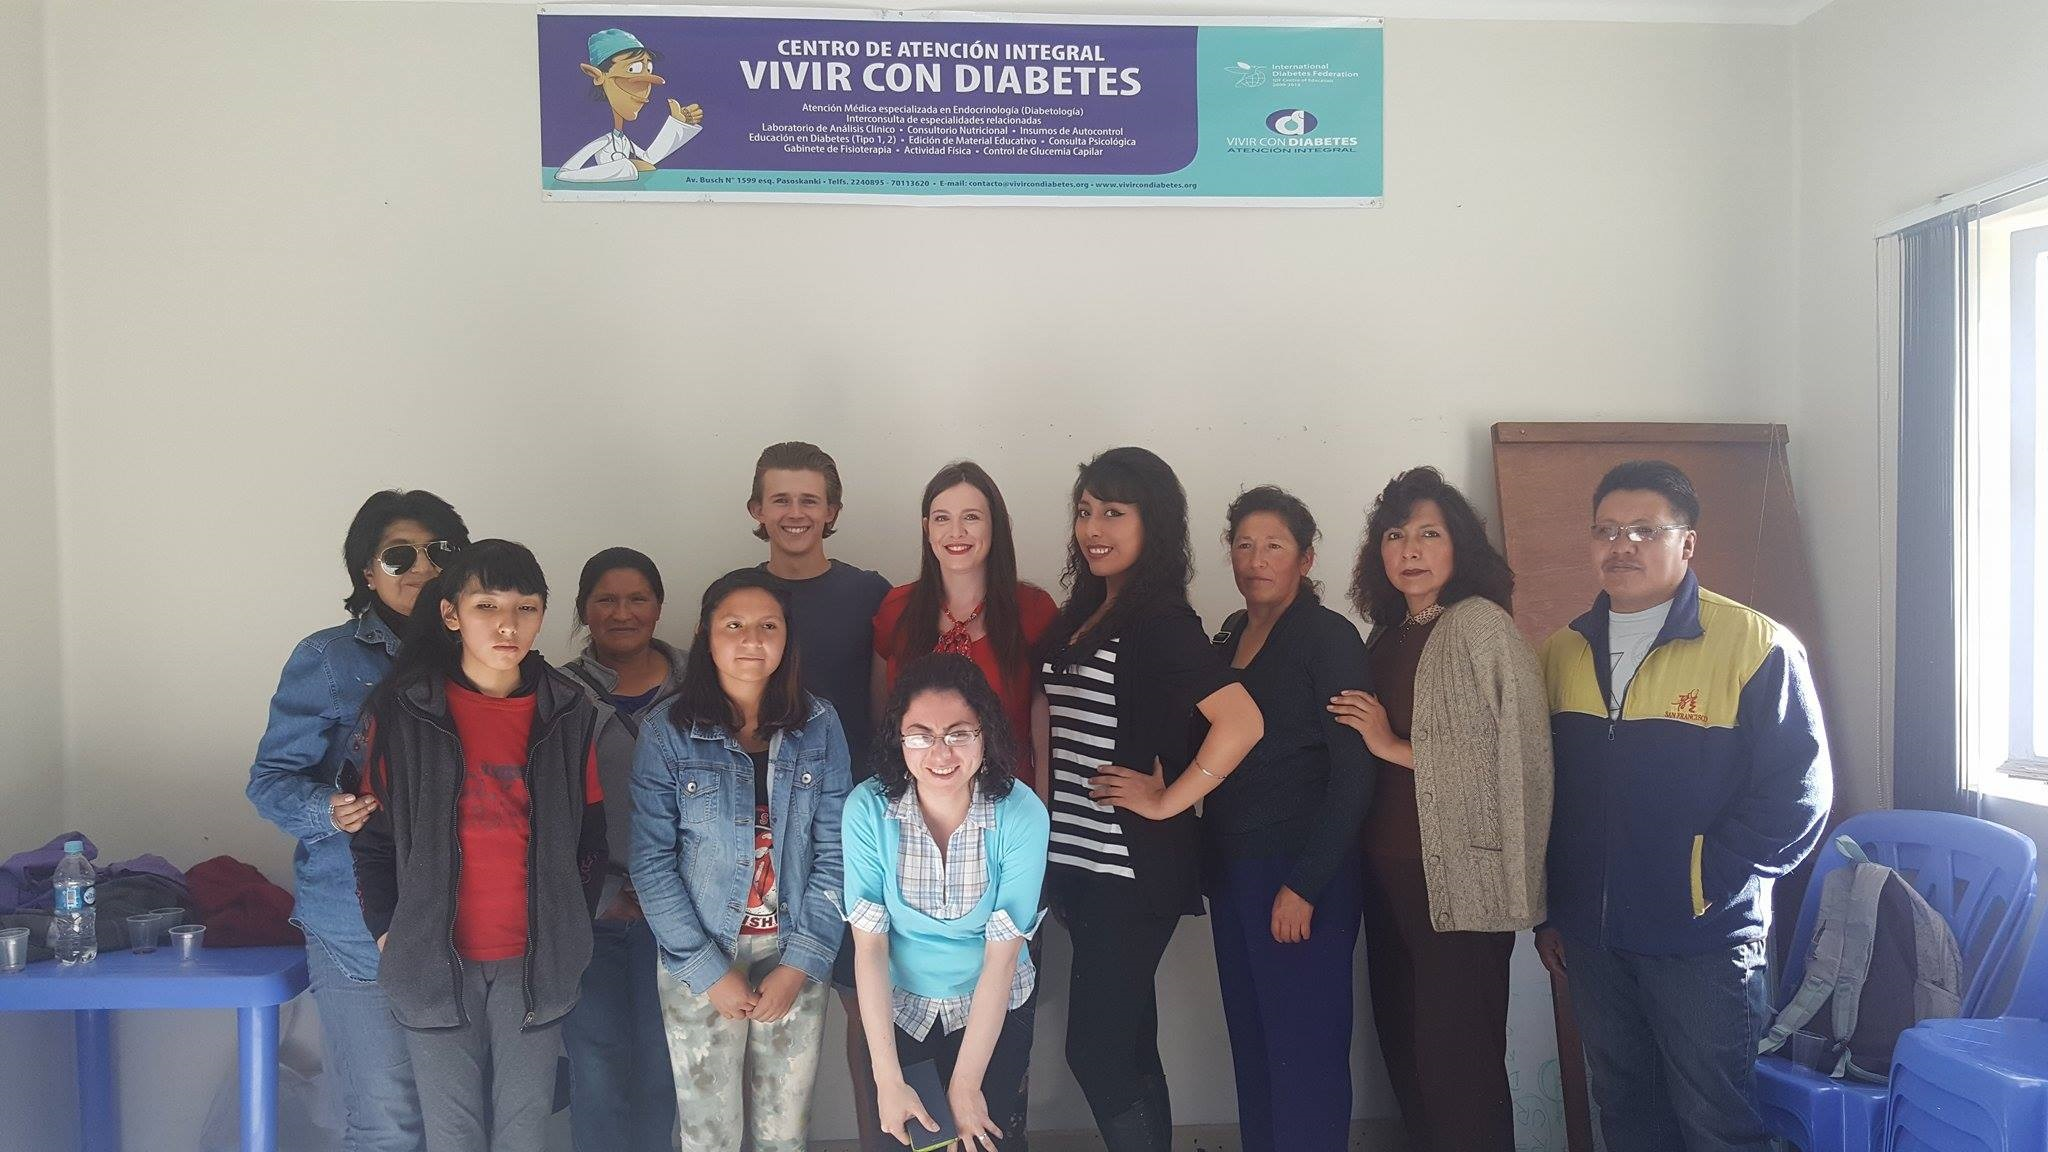 Diabetic charity in Bolivia group photo